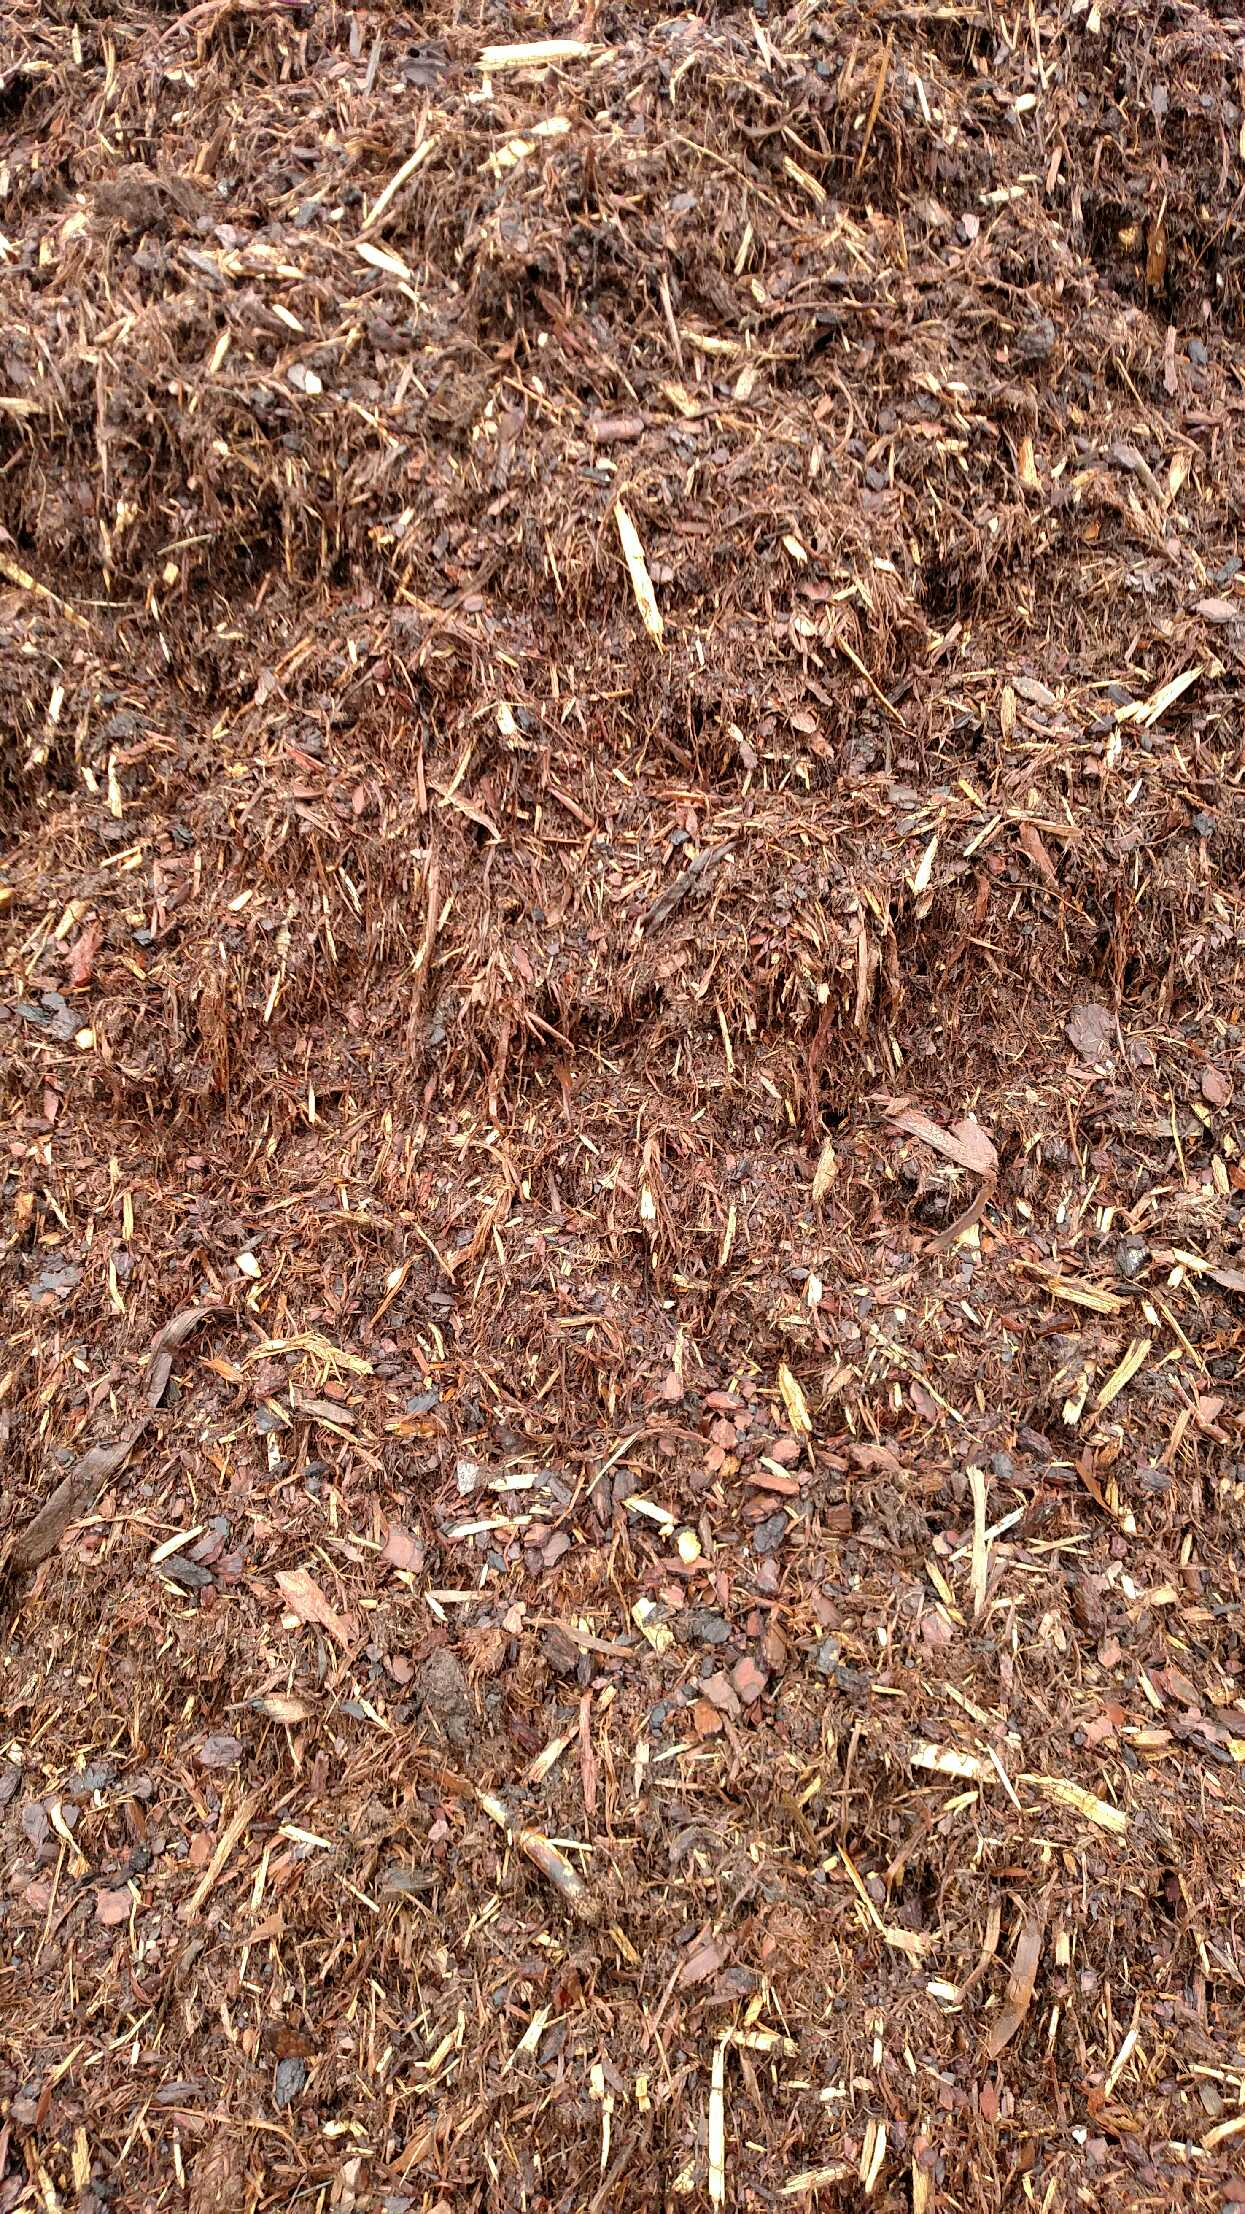 General Purpose Pine & Hardwood Mix Mulch available in-store and online for pickup or delivery at Asheville Mulch in North Carolina